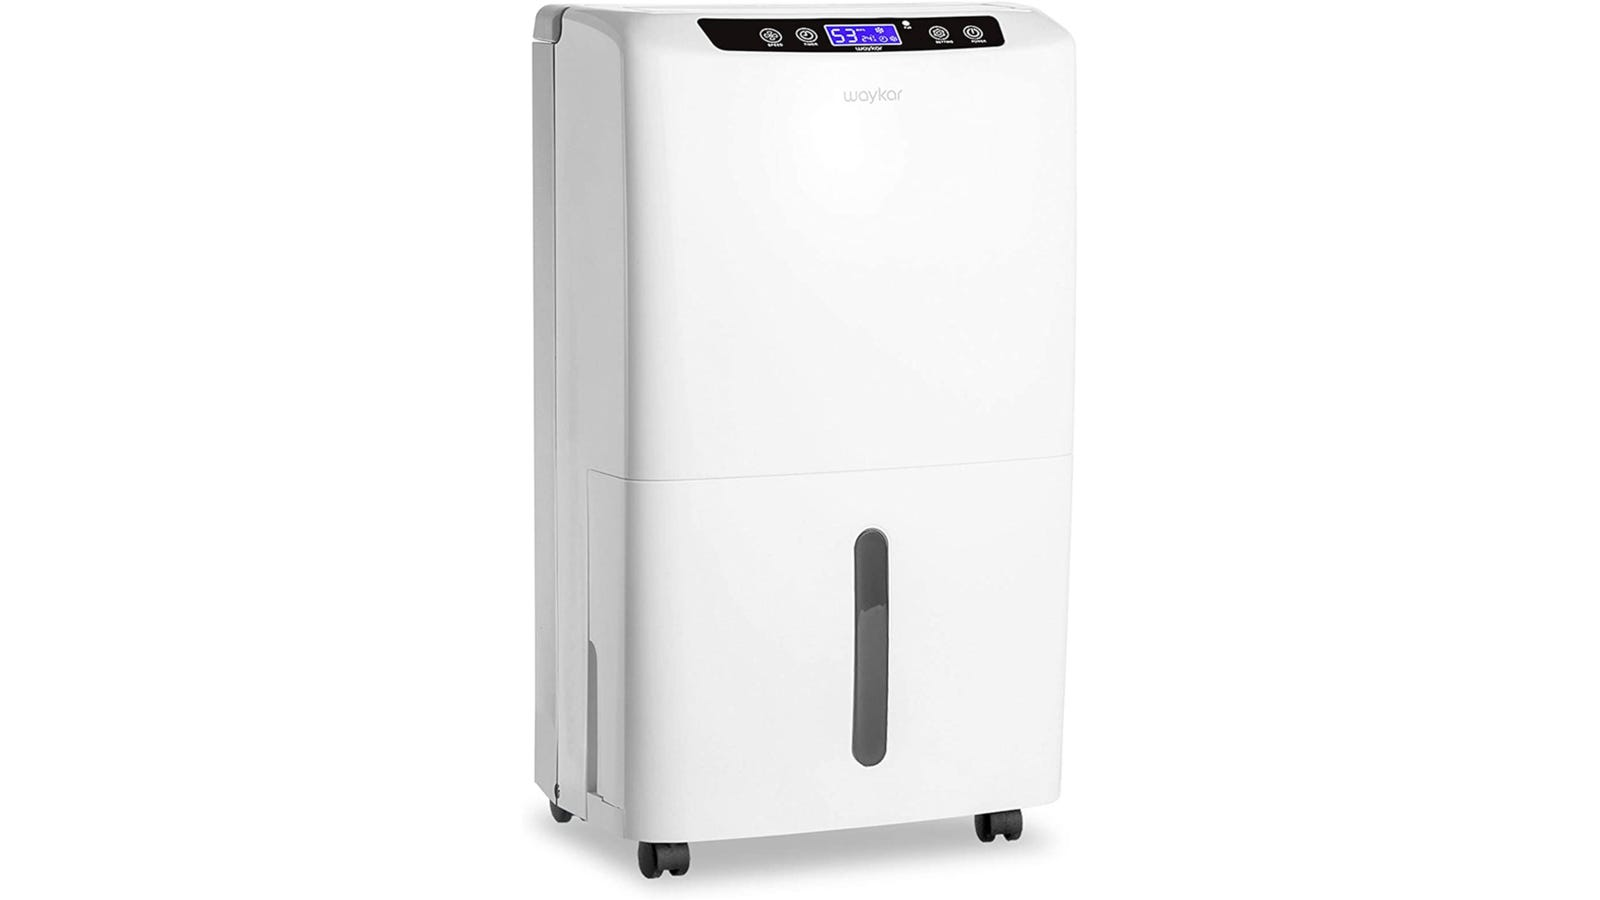 White modern dehumidifier with an LED screen and wheels.